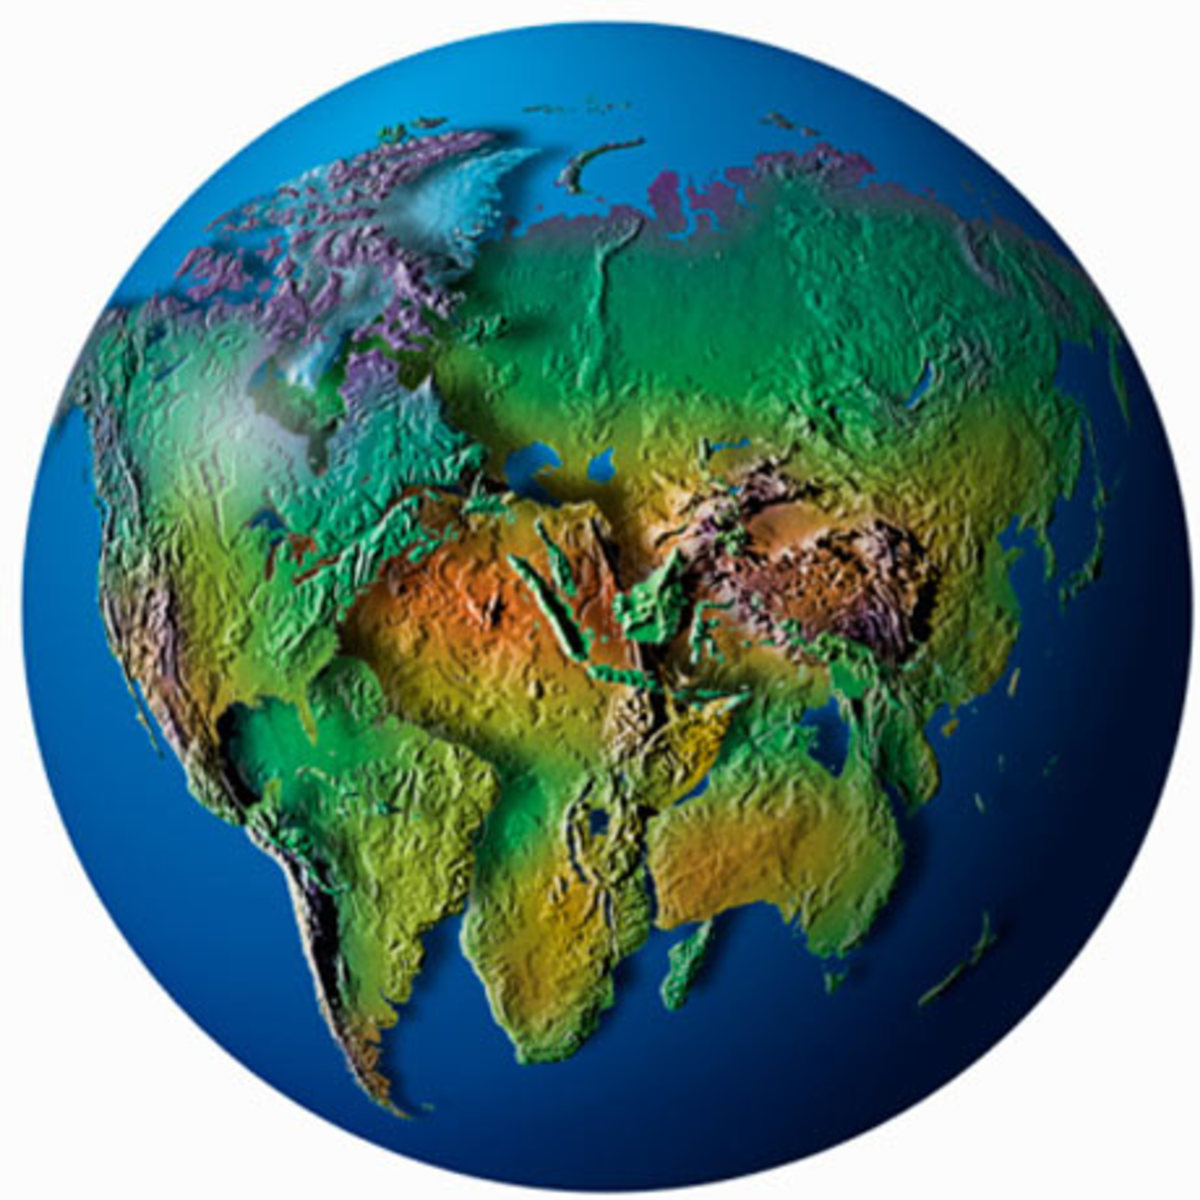 The Earth's first continent started as one relatively small land mass and only separated after eons of natural expansion through seismic events.